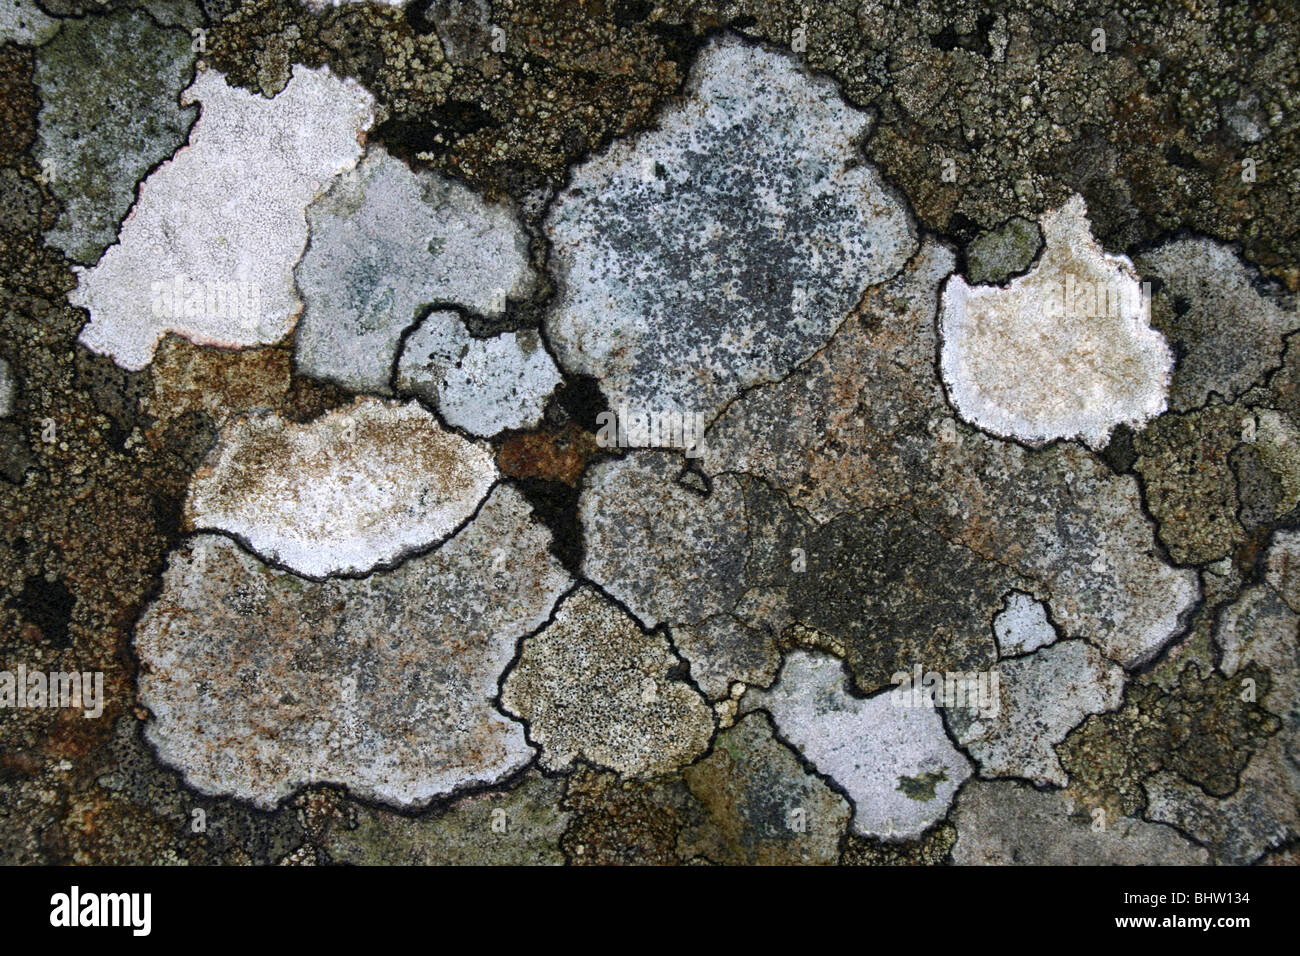 Patchwork de lichens crustacés sur un rocher Photo Stock